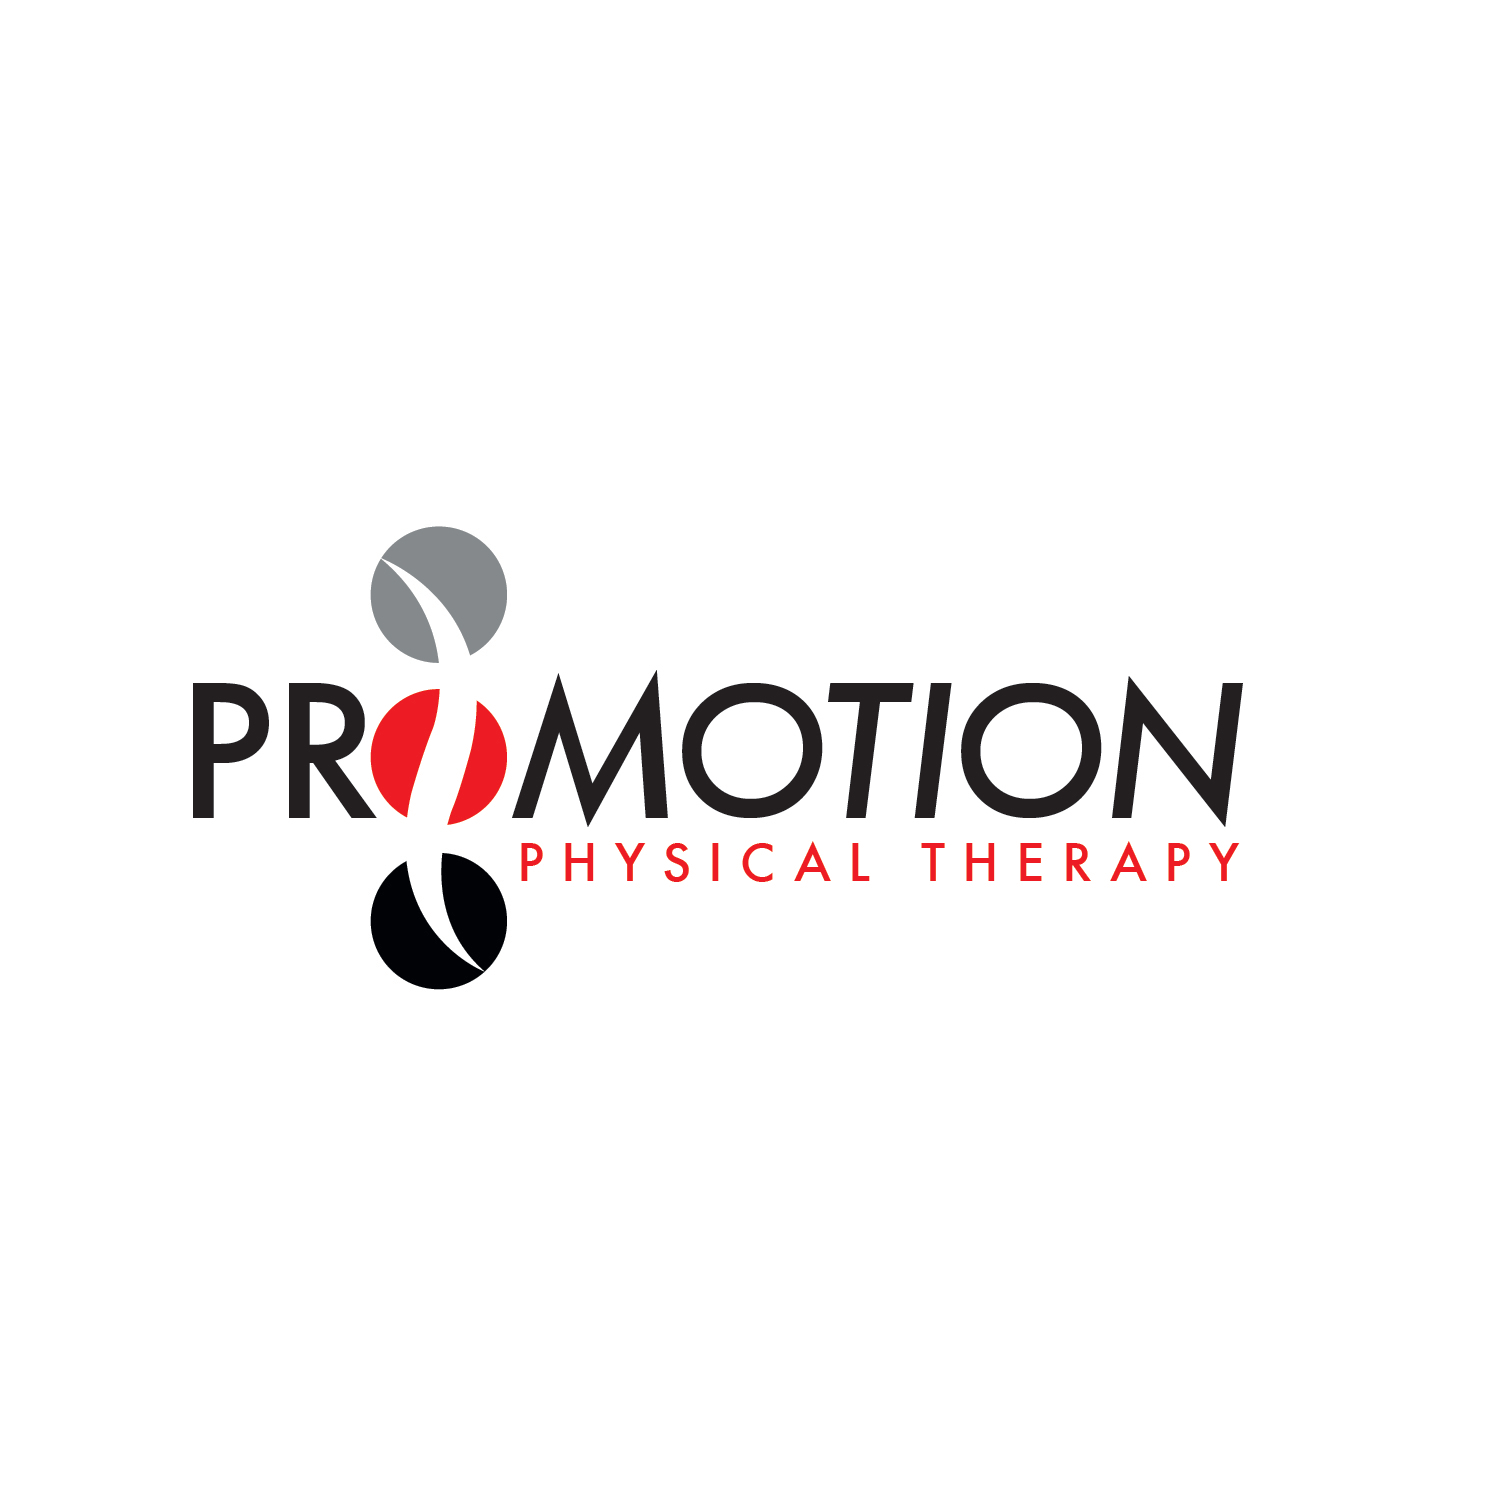 Promotion Physical Therapy - San Antonio, TX 78248 - (210)479-3334 | ShowMeLocal.com